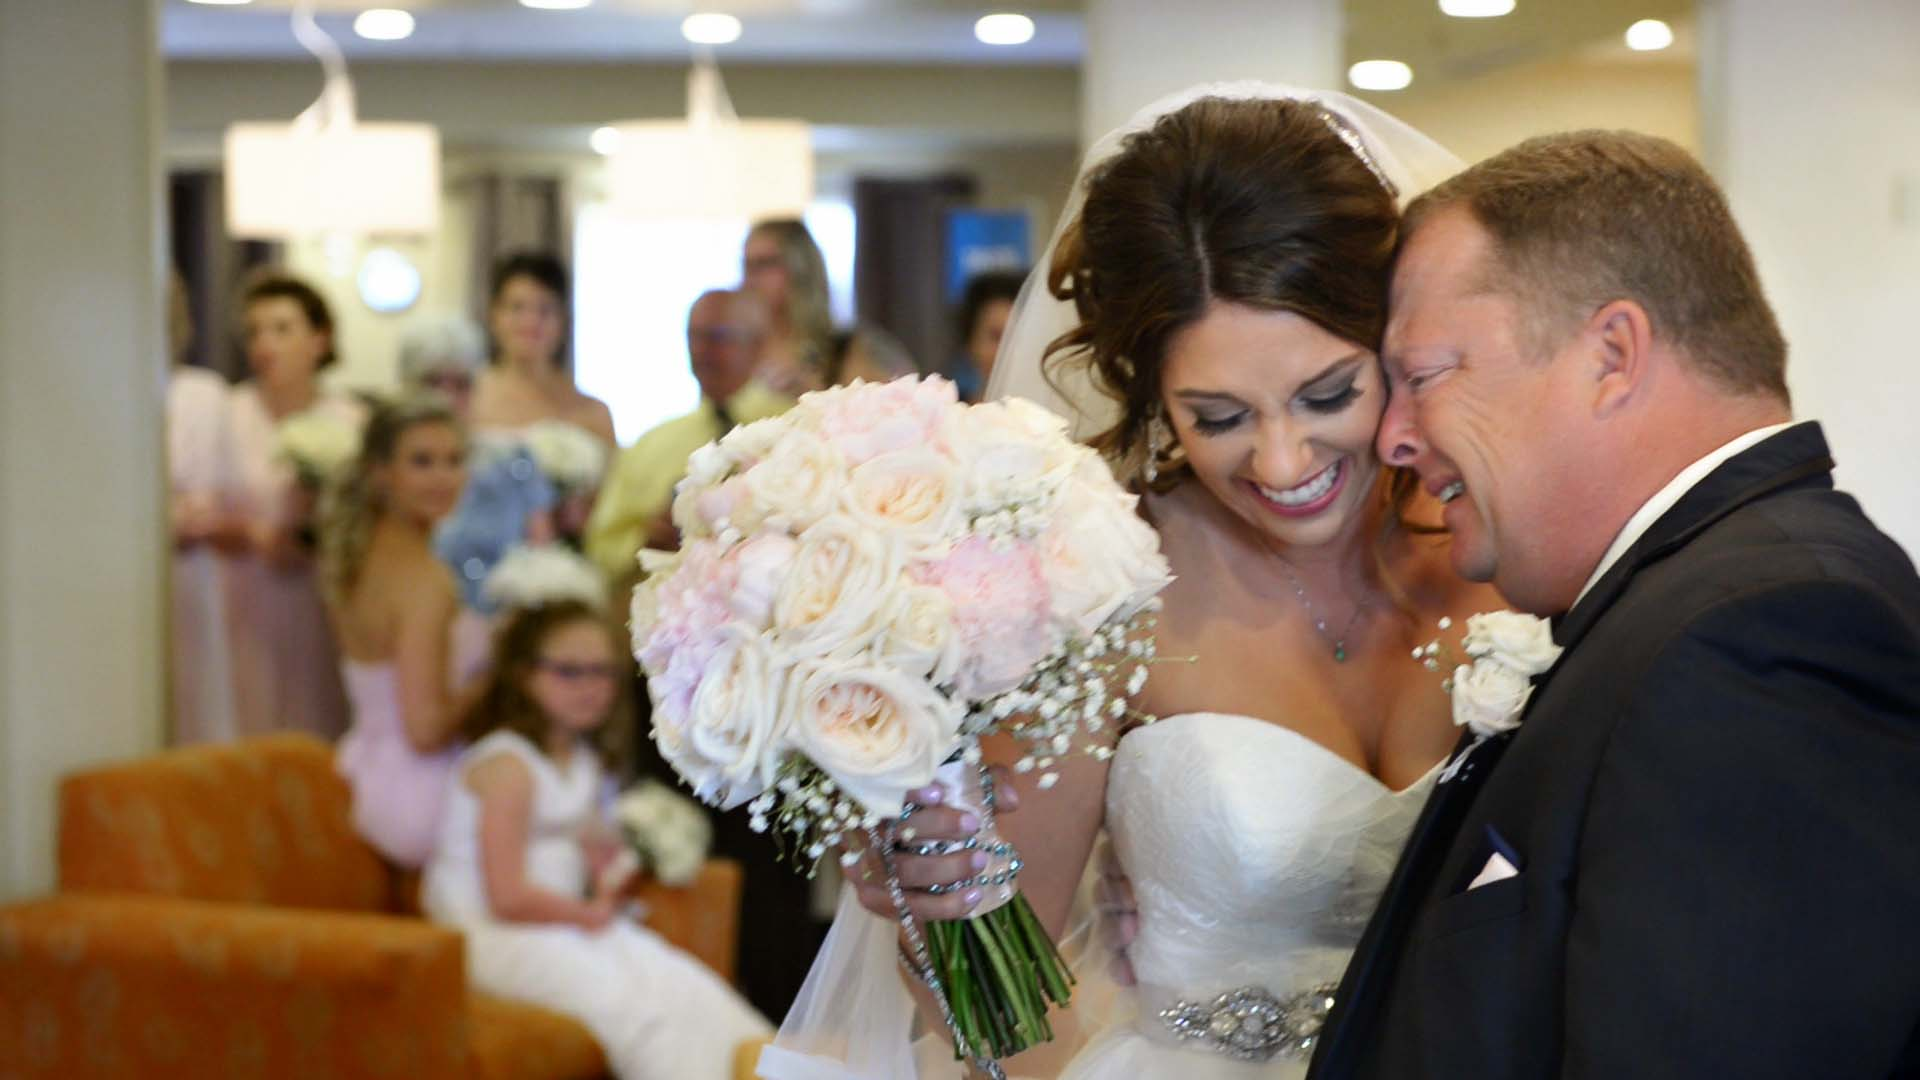 medina ohio wedding video company